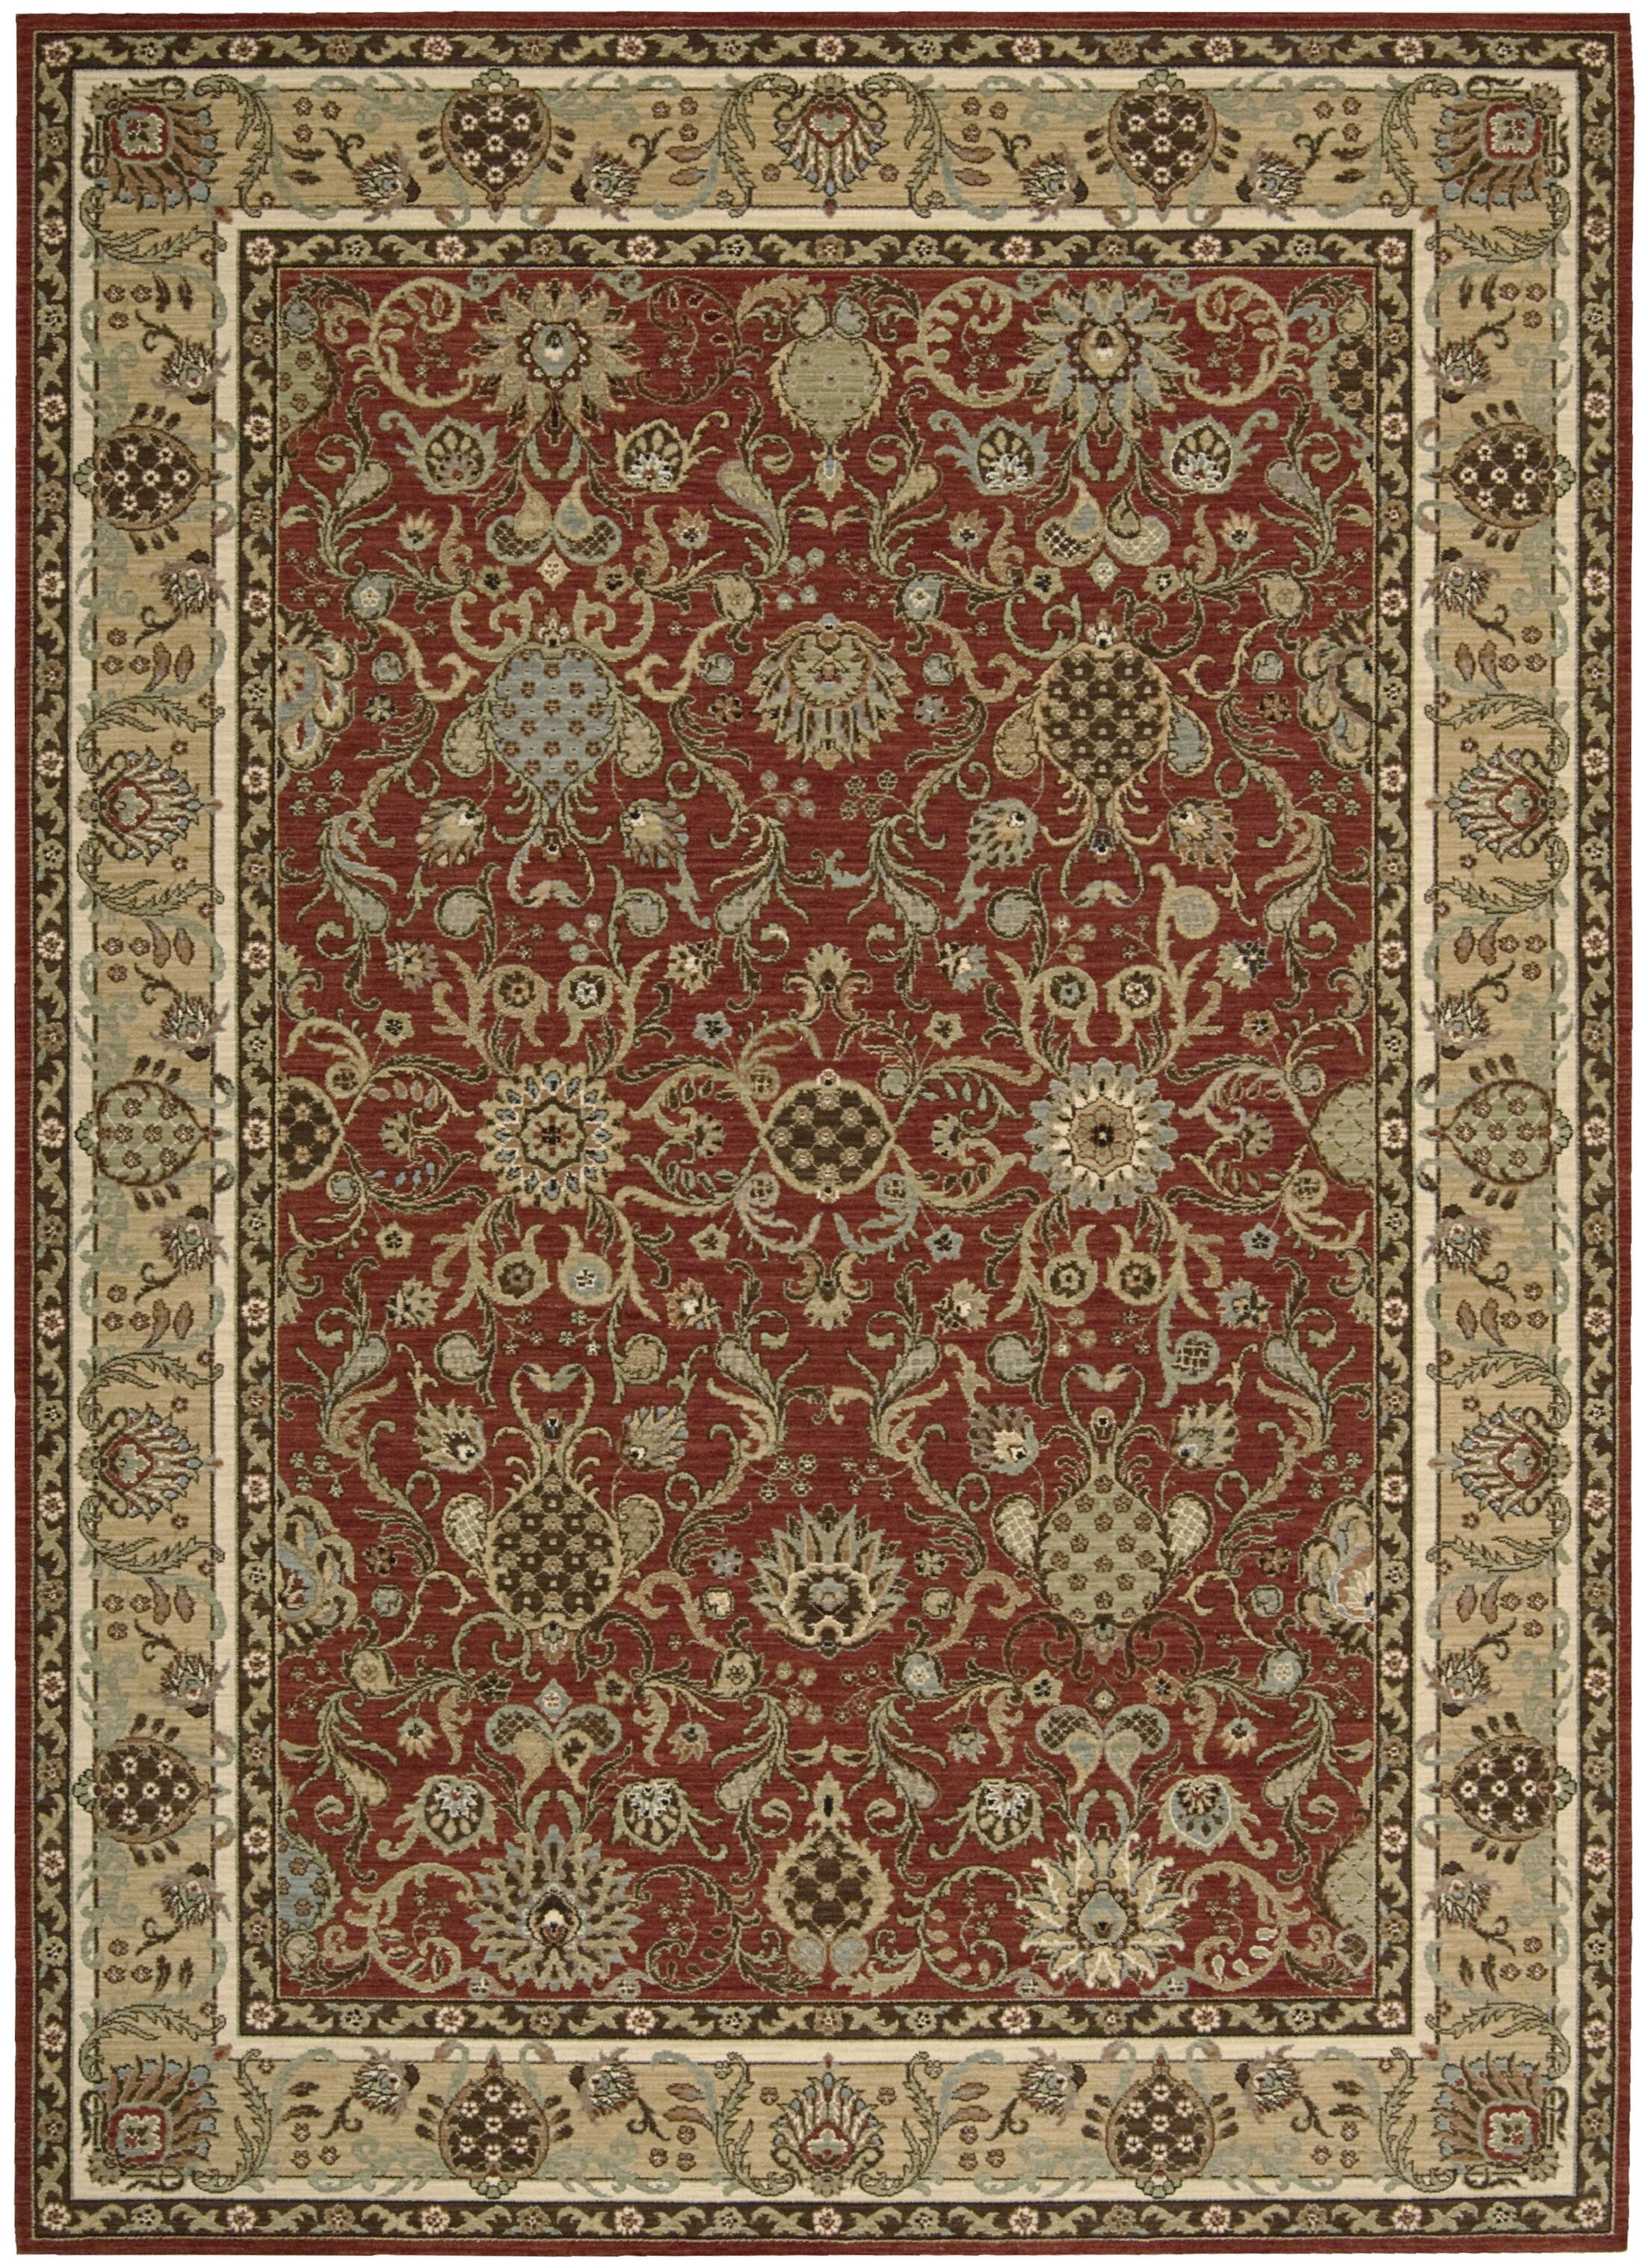 Lumiere Stateroom Brown Area Rug Rug Size: Rectangle 7'9